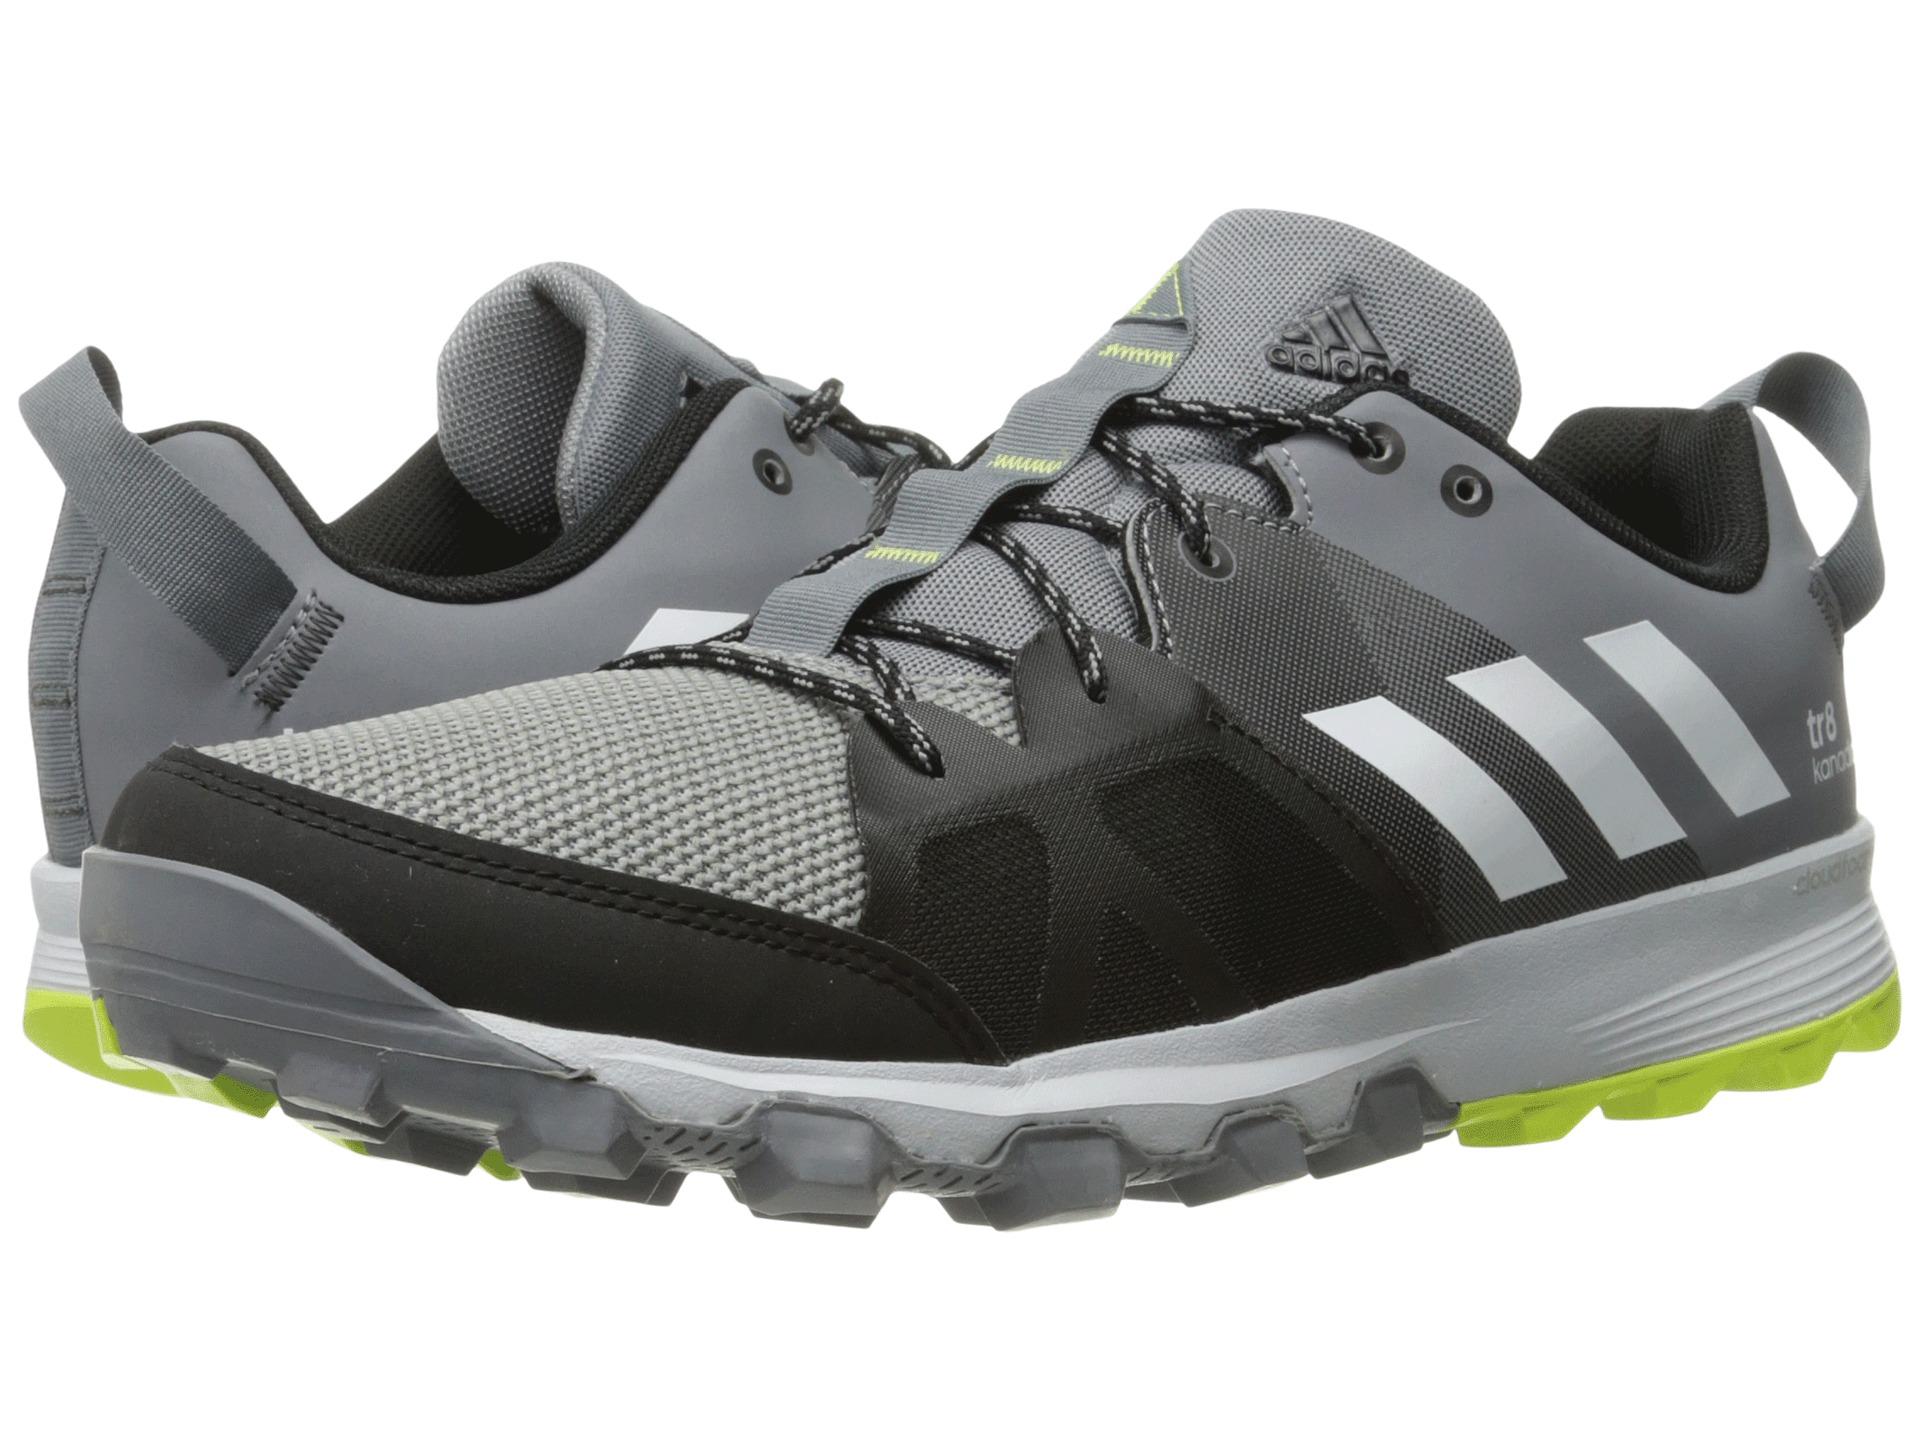 adidas Outdoor Kanadia 8 TR at 6pm.com